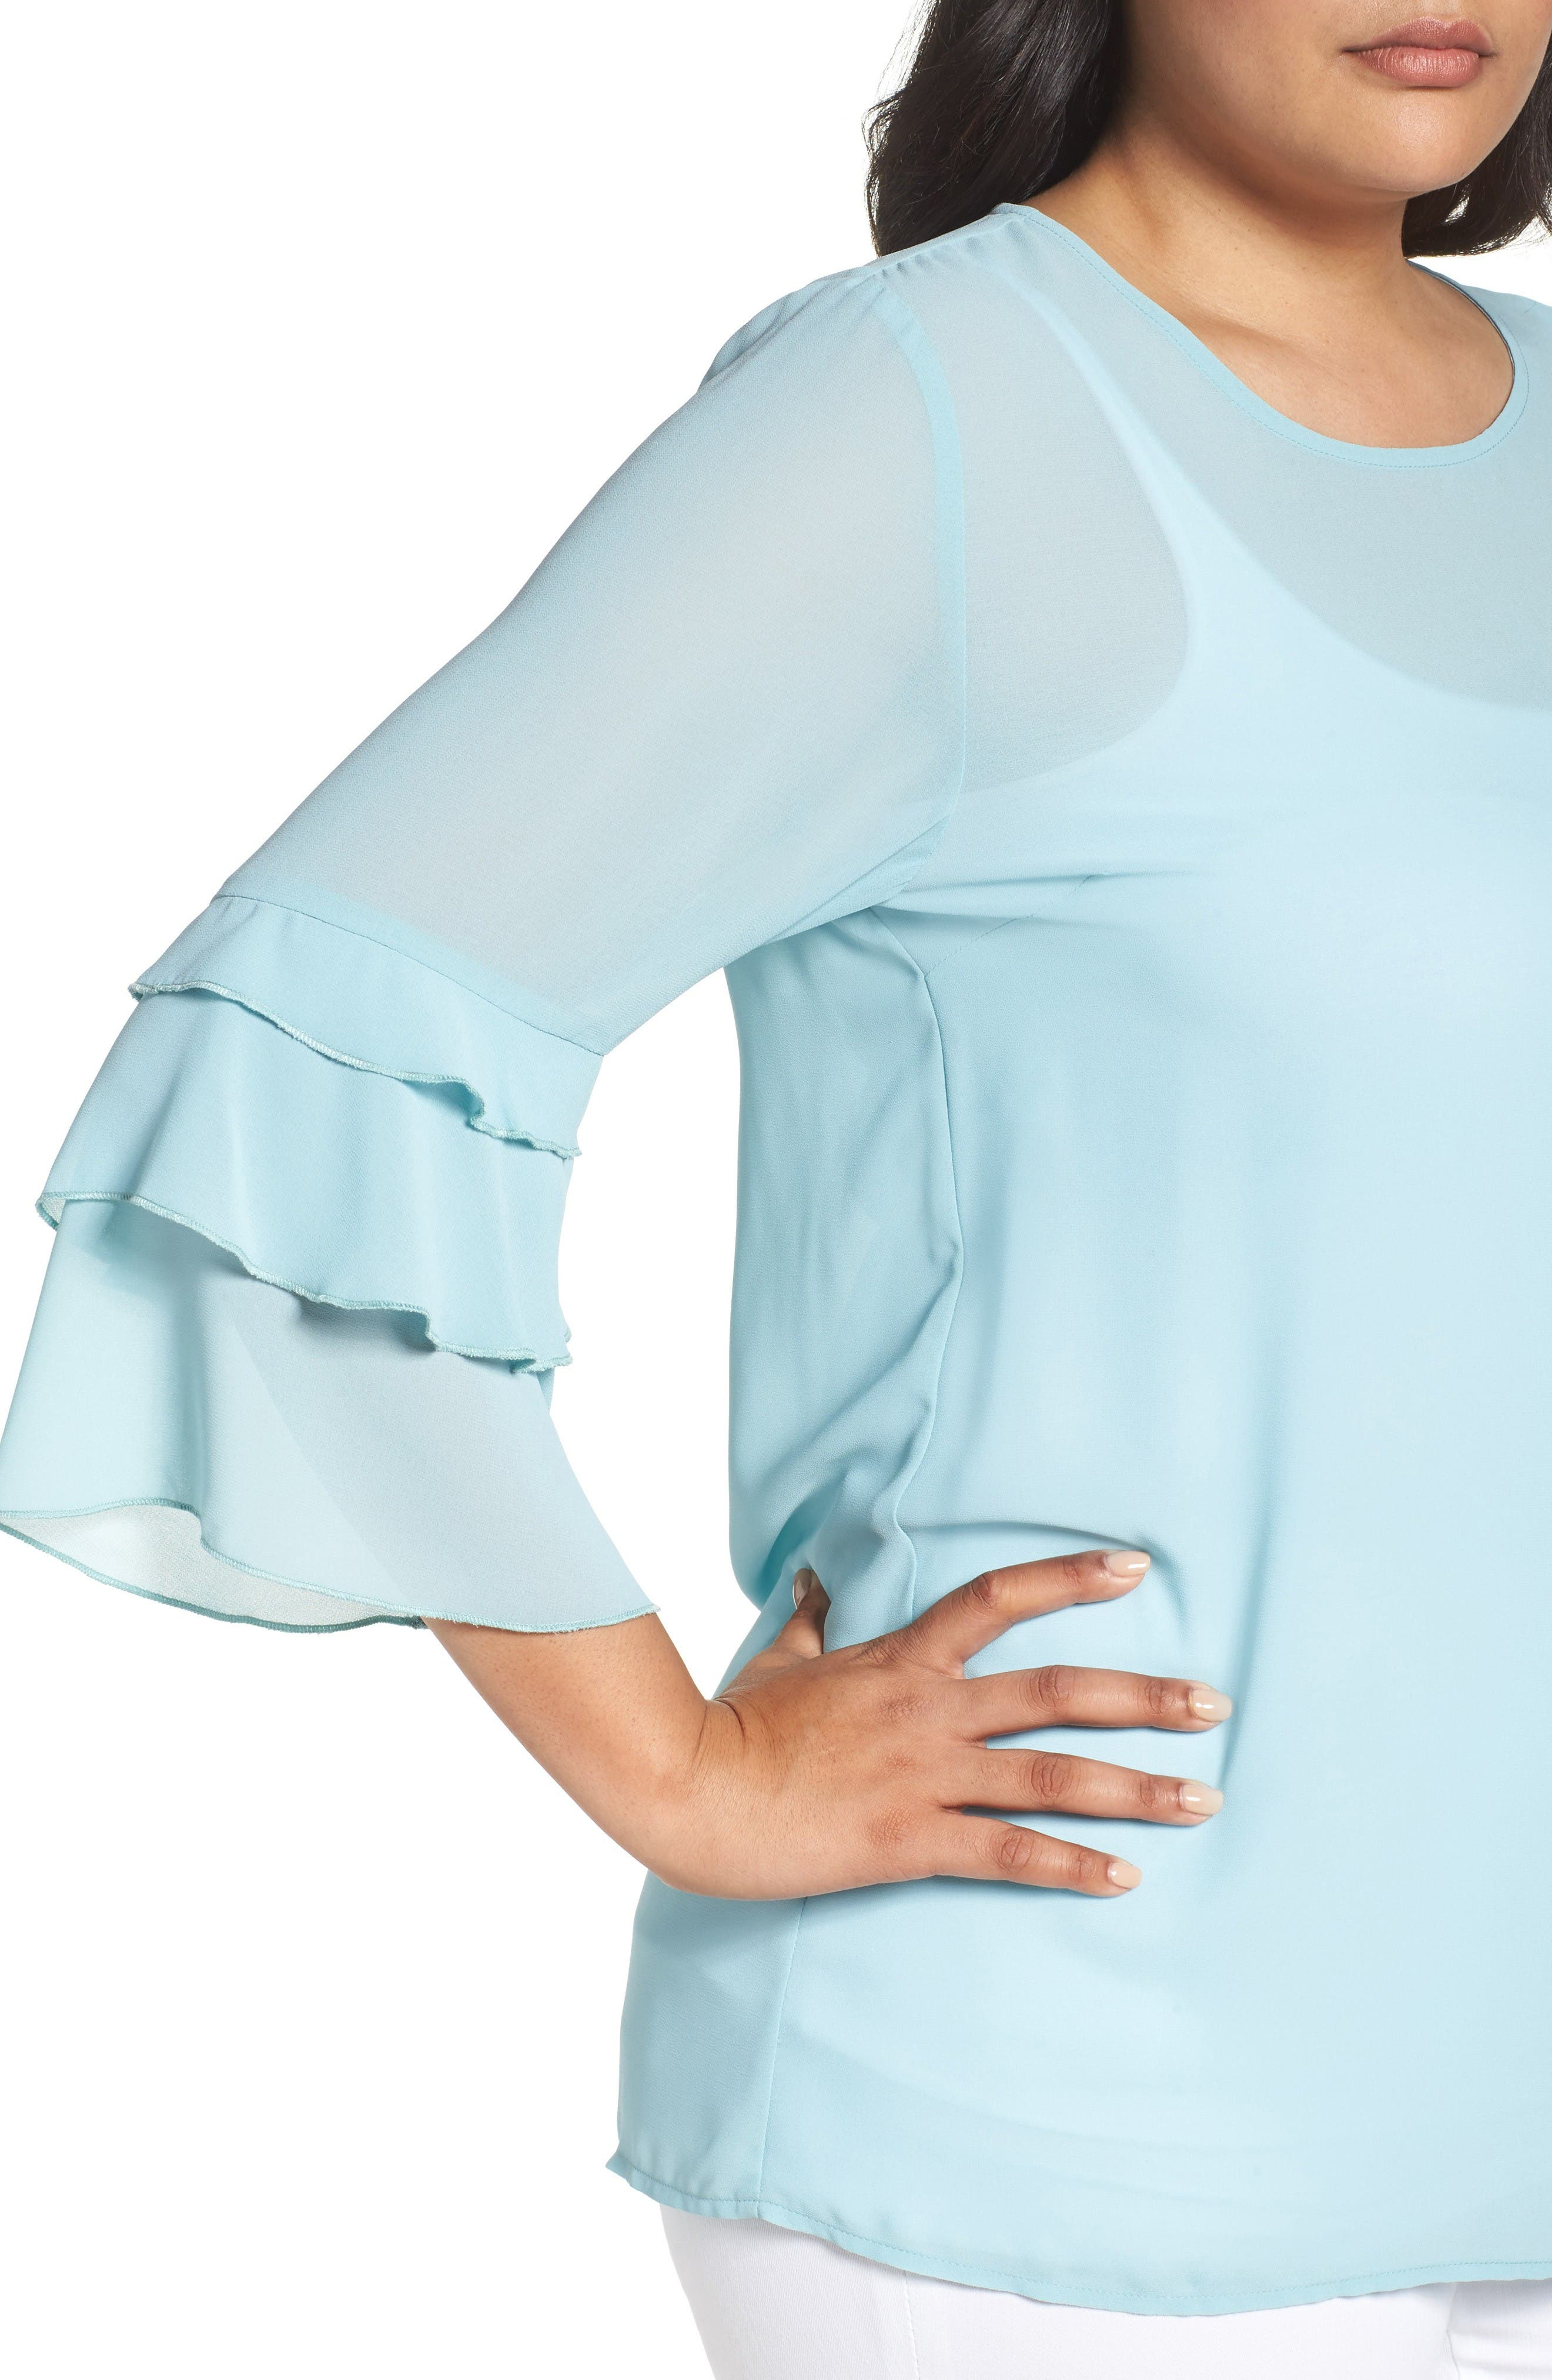 Ruffle Sleeve Blouse,                             Alternate thumbnail 4, color,                             Blue